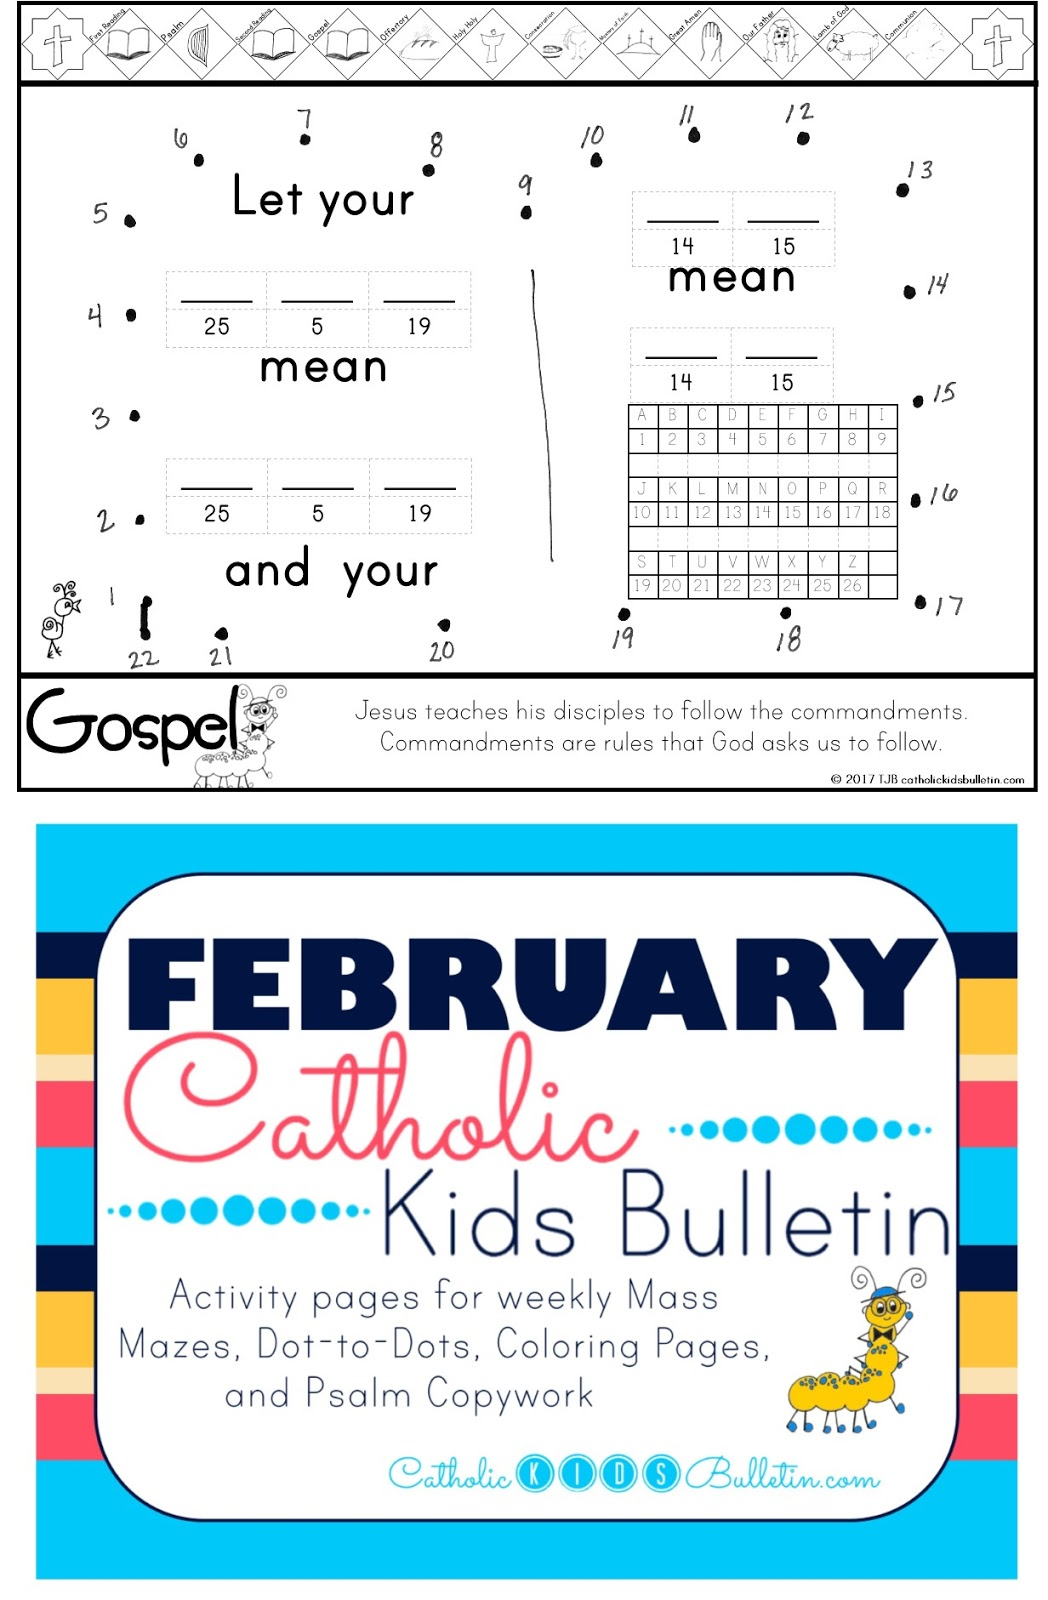 2 Gospel Catholic Kids Bulletin Coloring Page Matthew 5.17-37